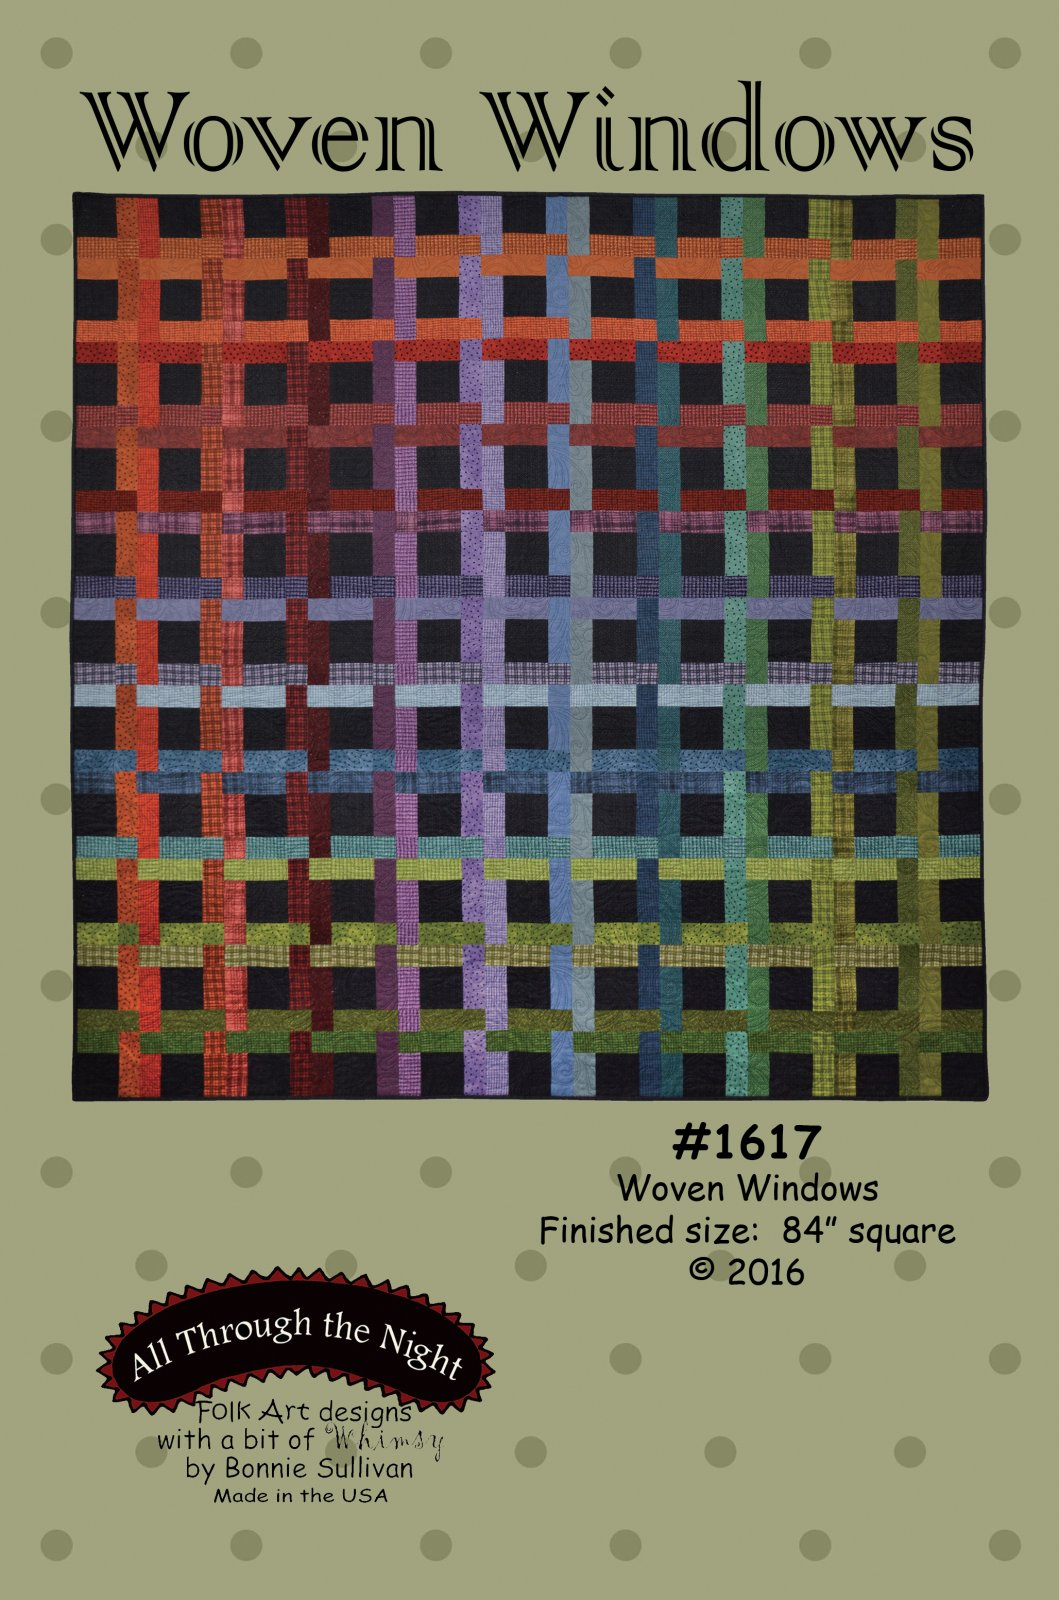 1617 Woven Windows